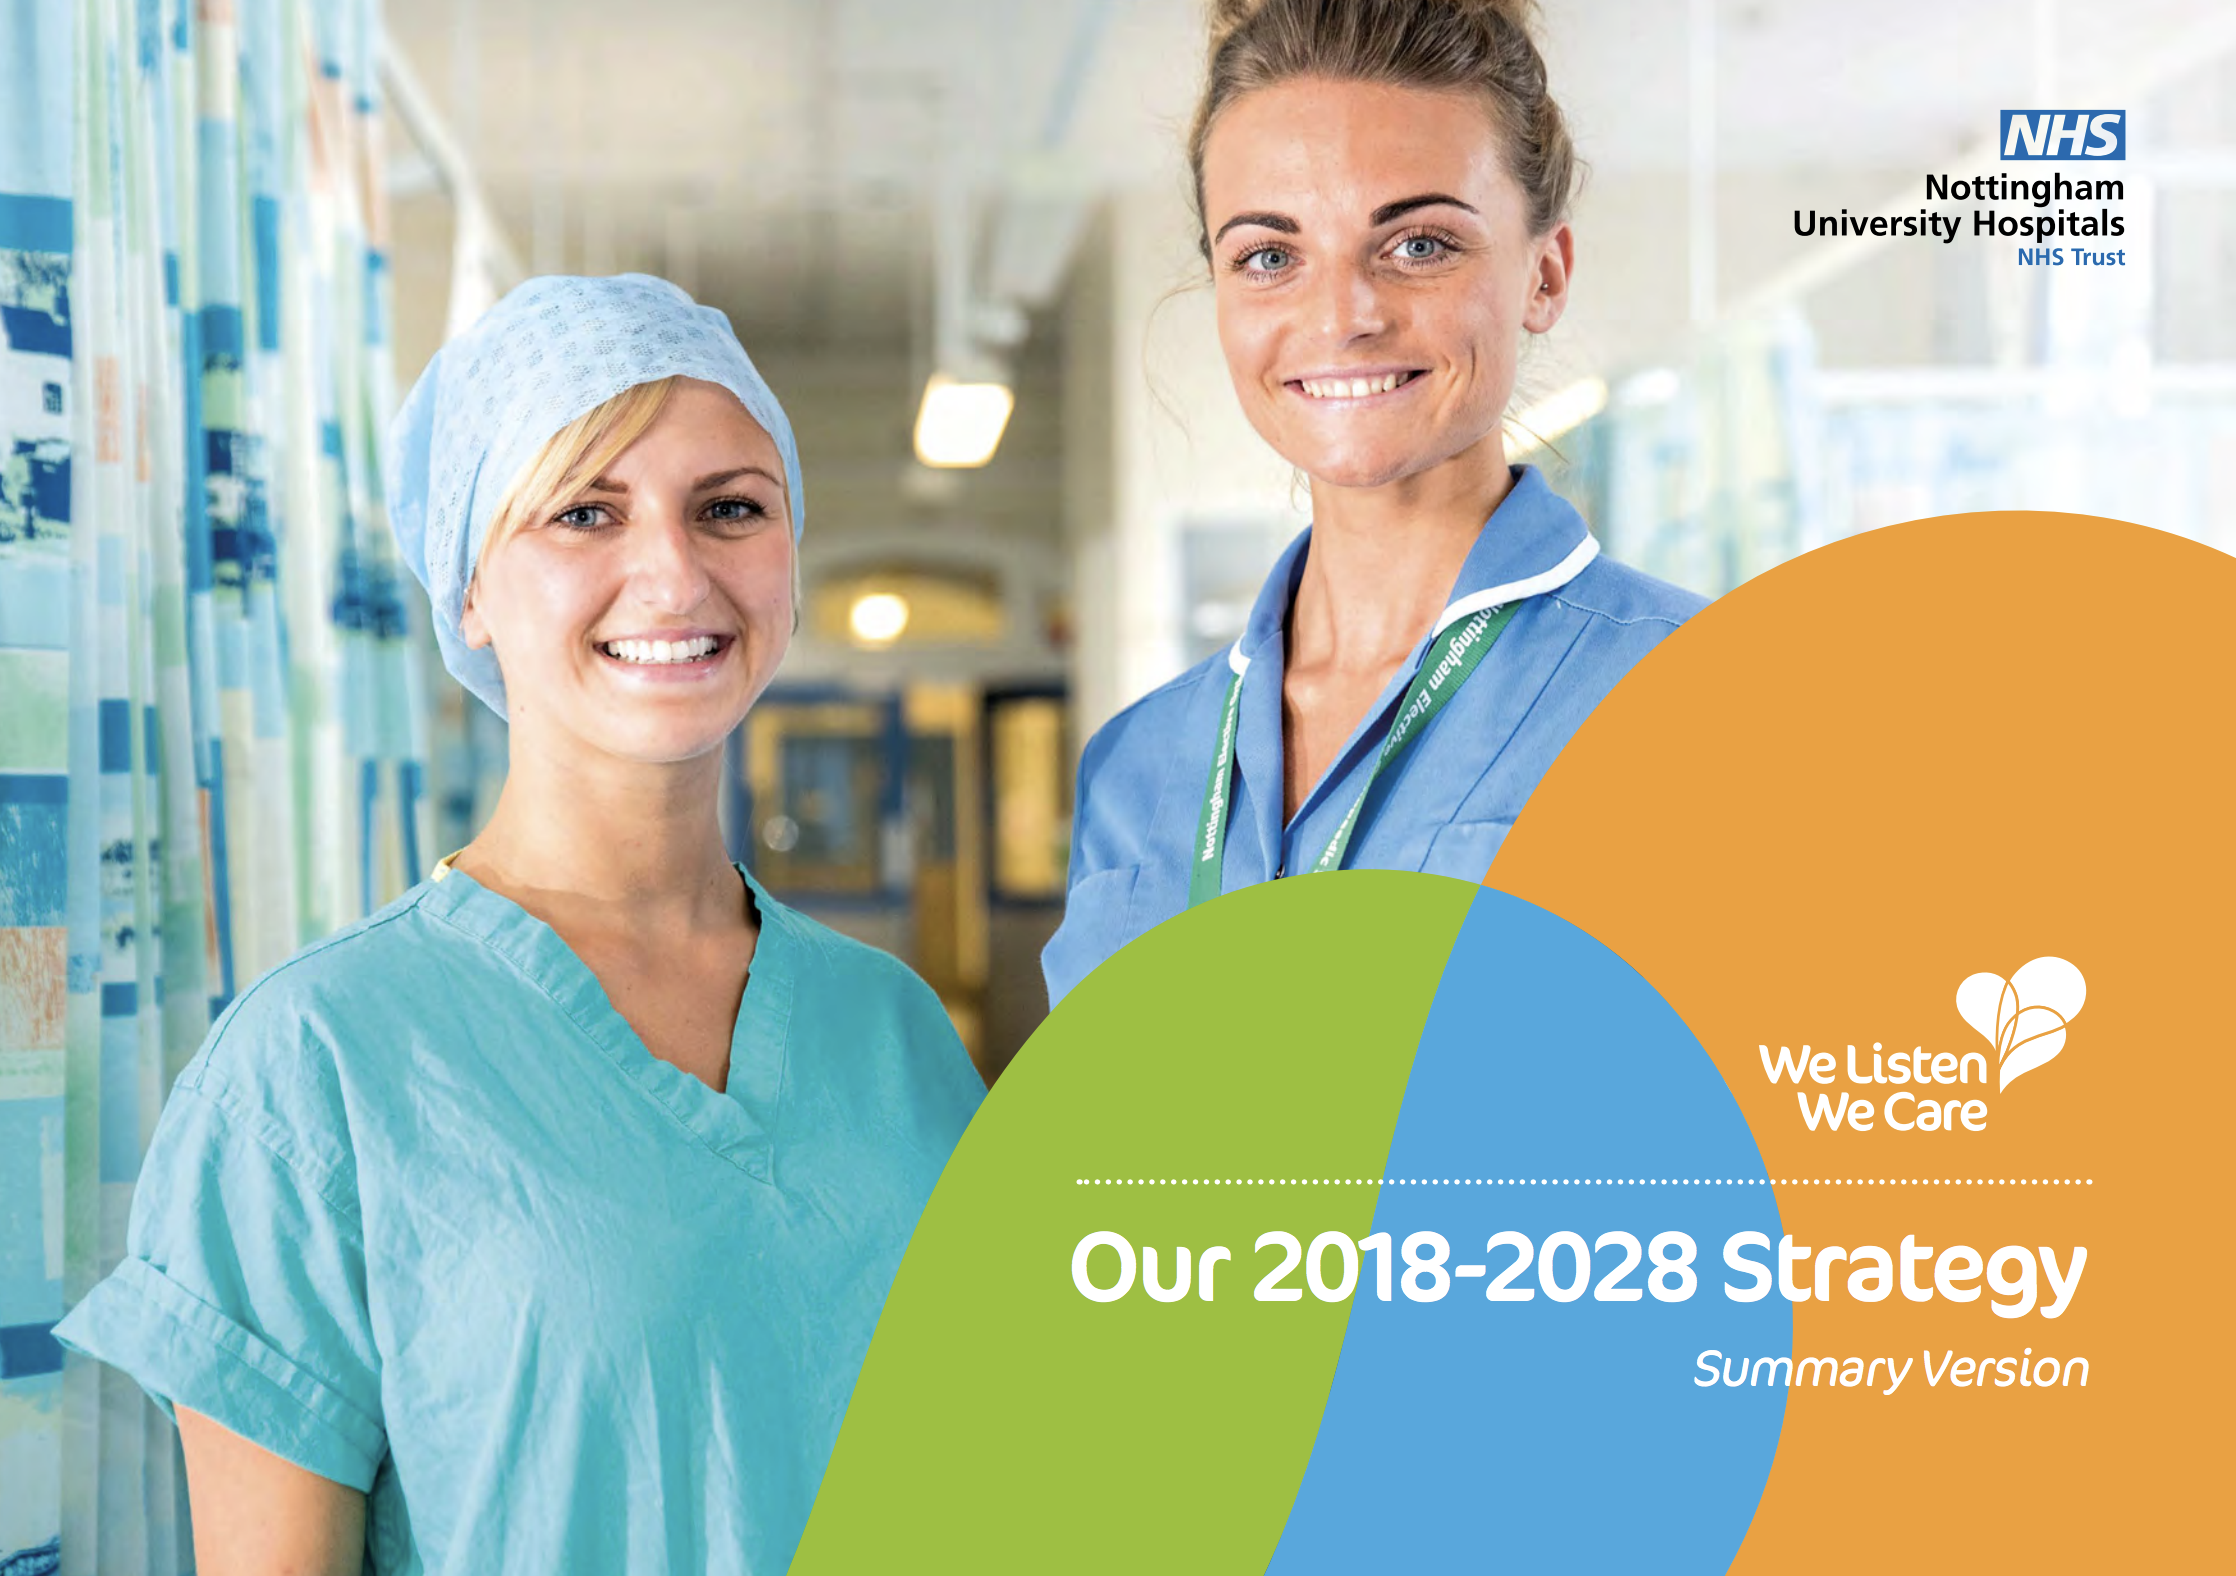 2018-2028 Strategy summary cover